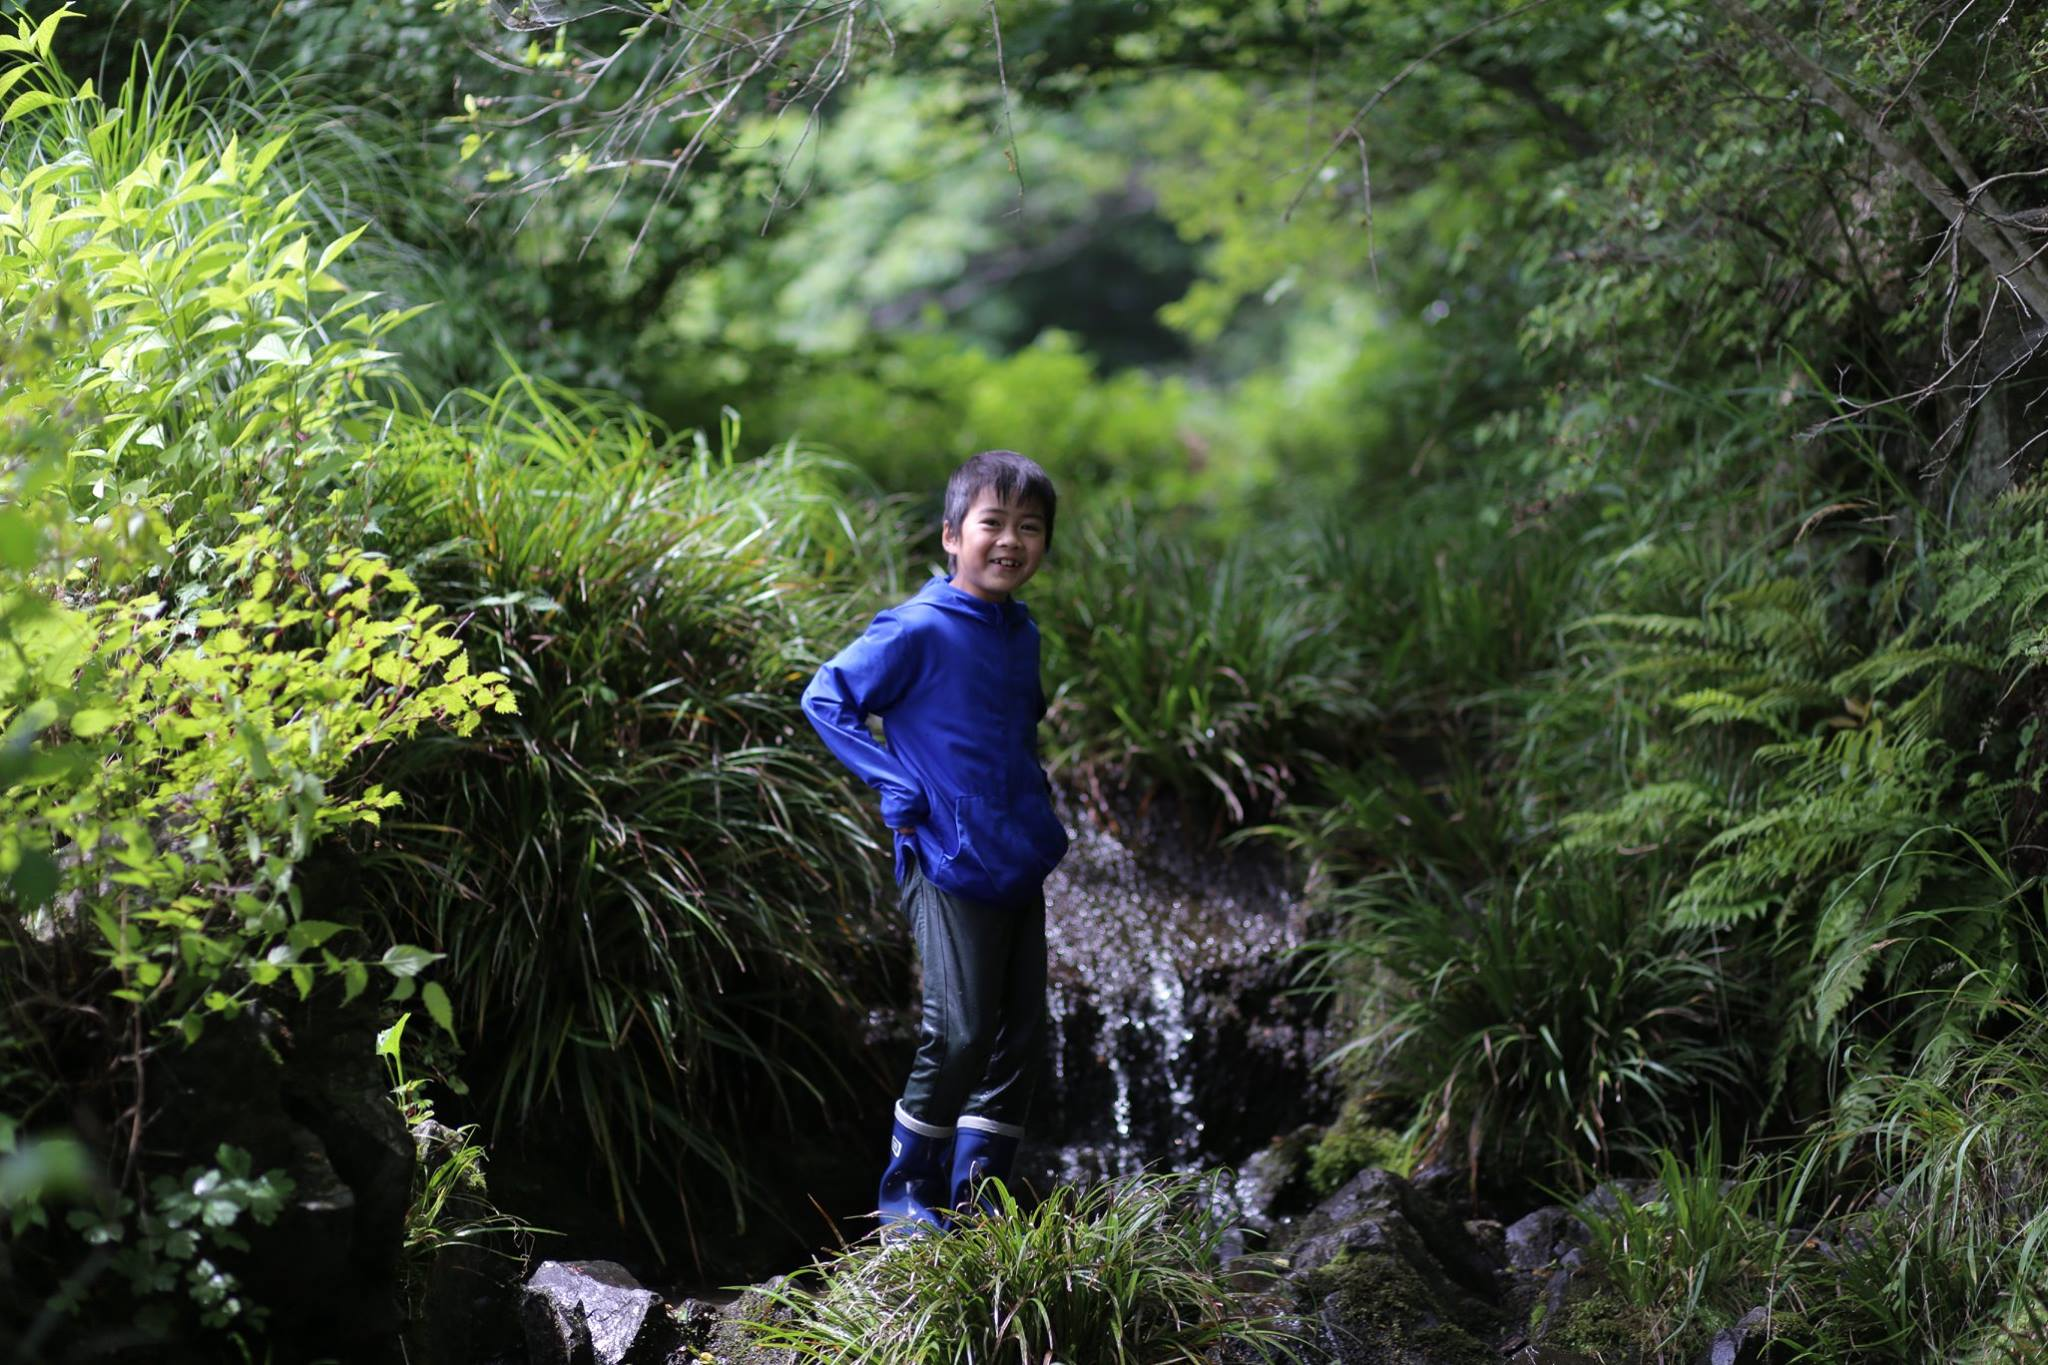 photograph of a boy standing in the midst of a wooded area